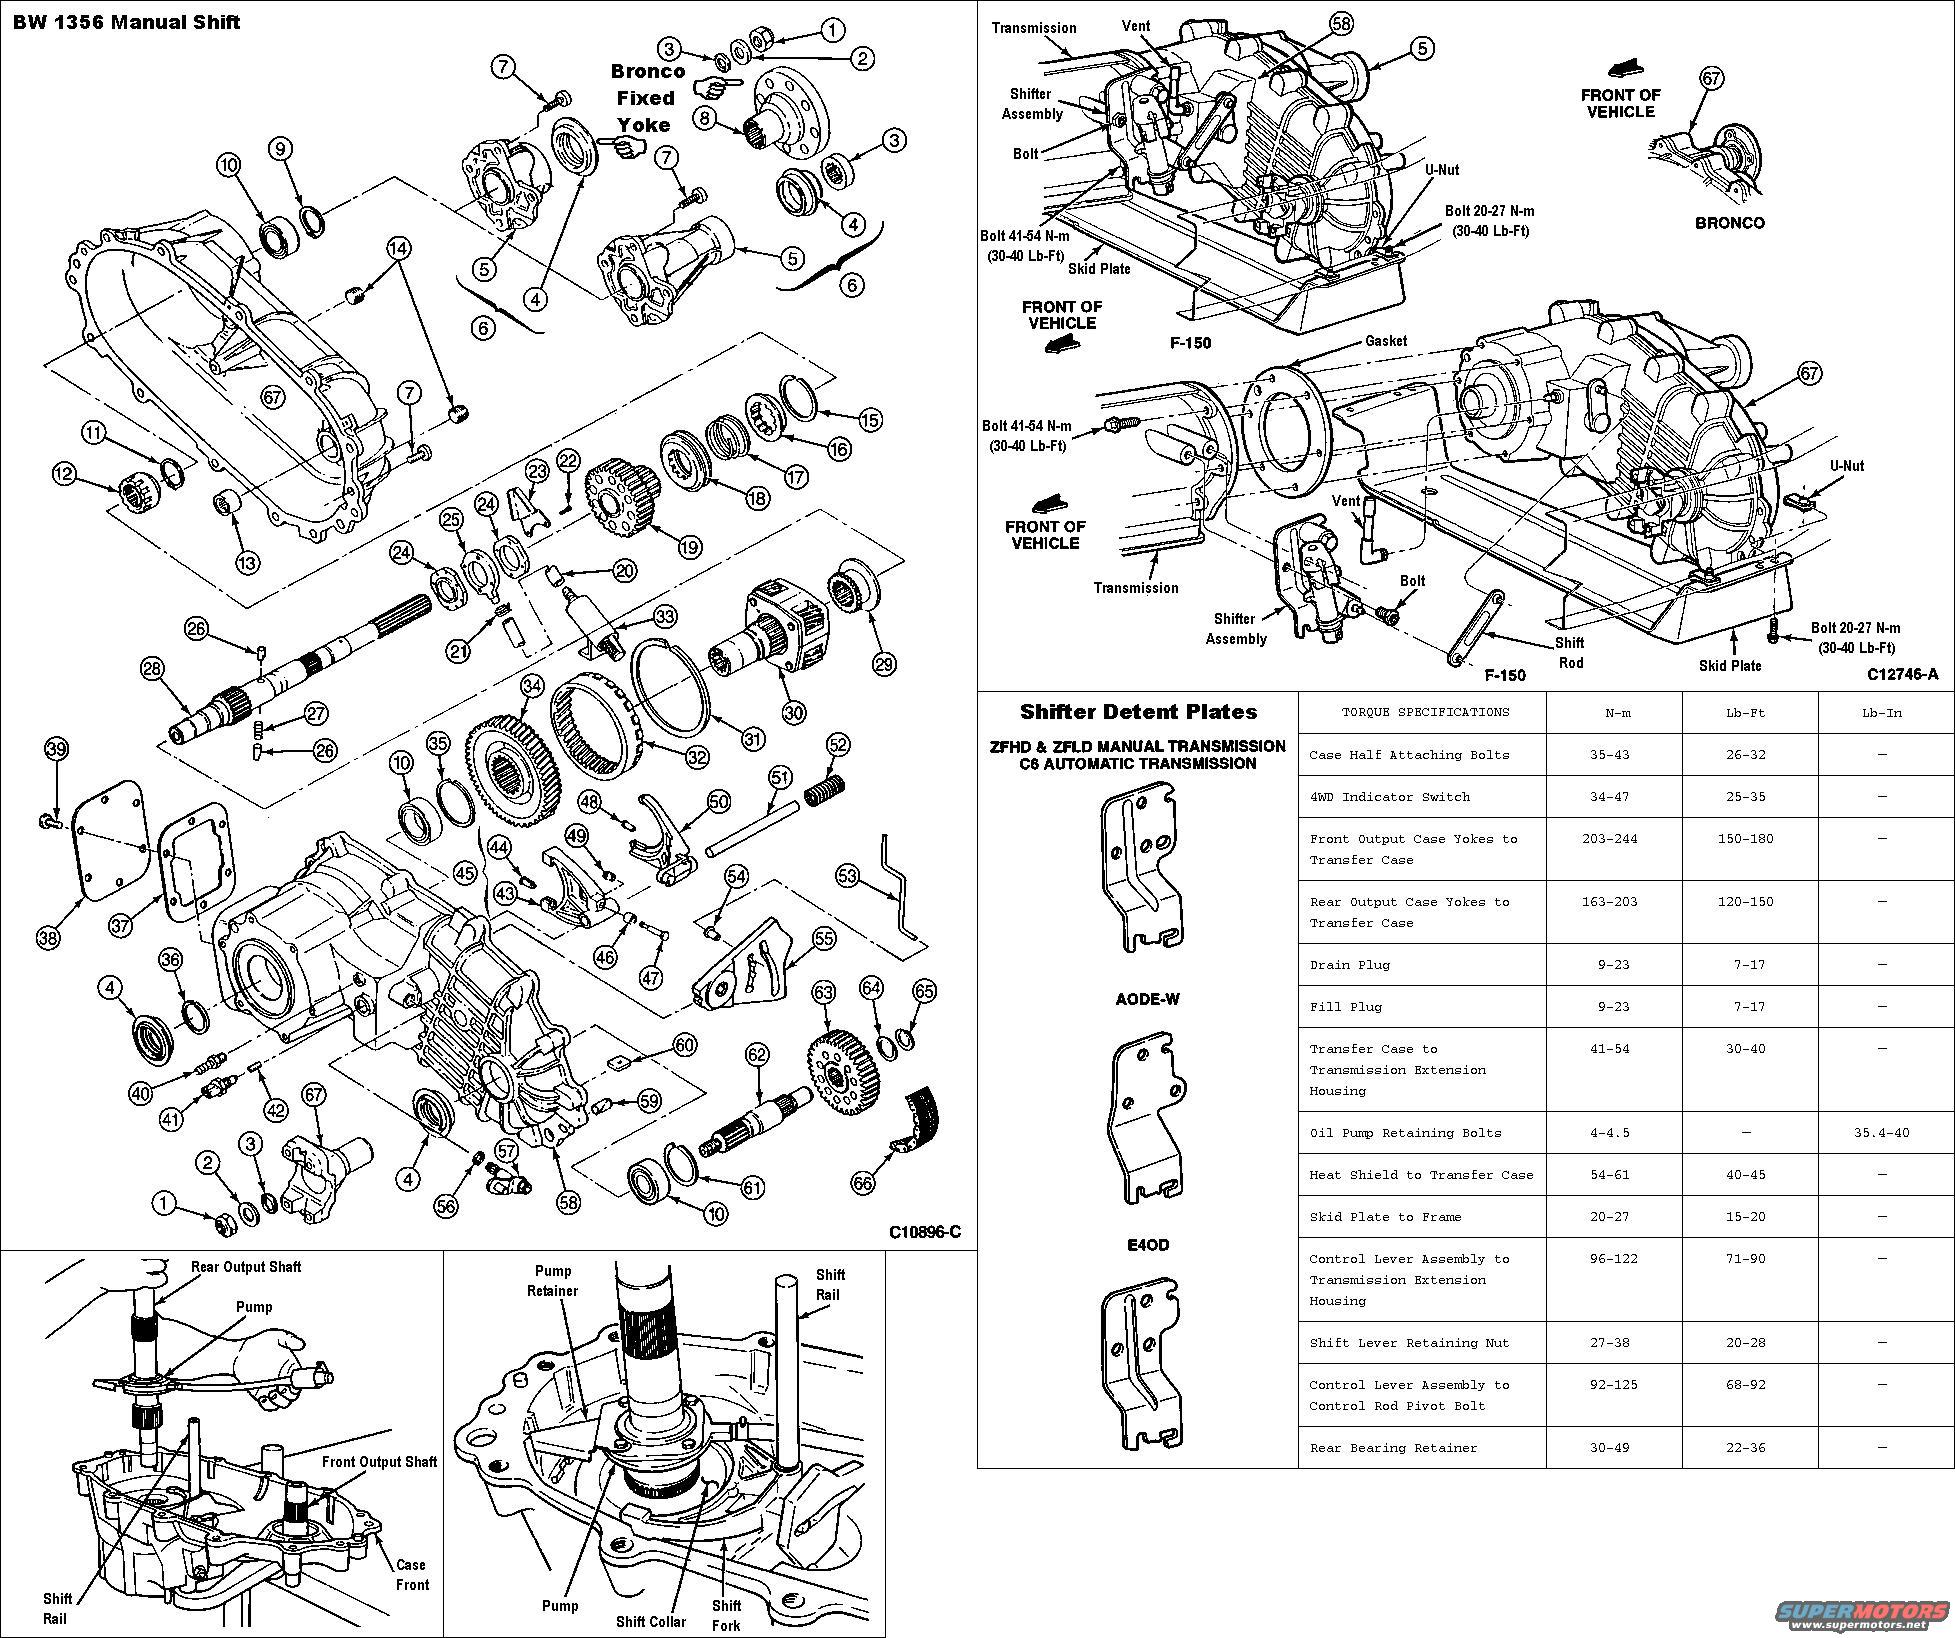 95 F250 Wiring Diagram Manual Guide 1995 Ford F 250 Radio Transfer Case Parts Free Engine Image For User Download